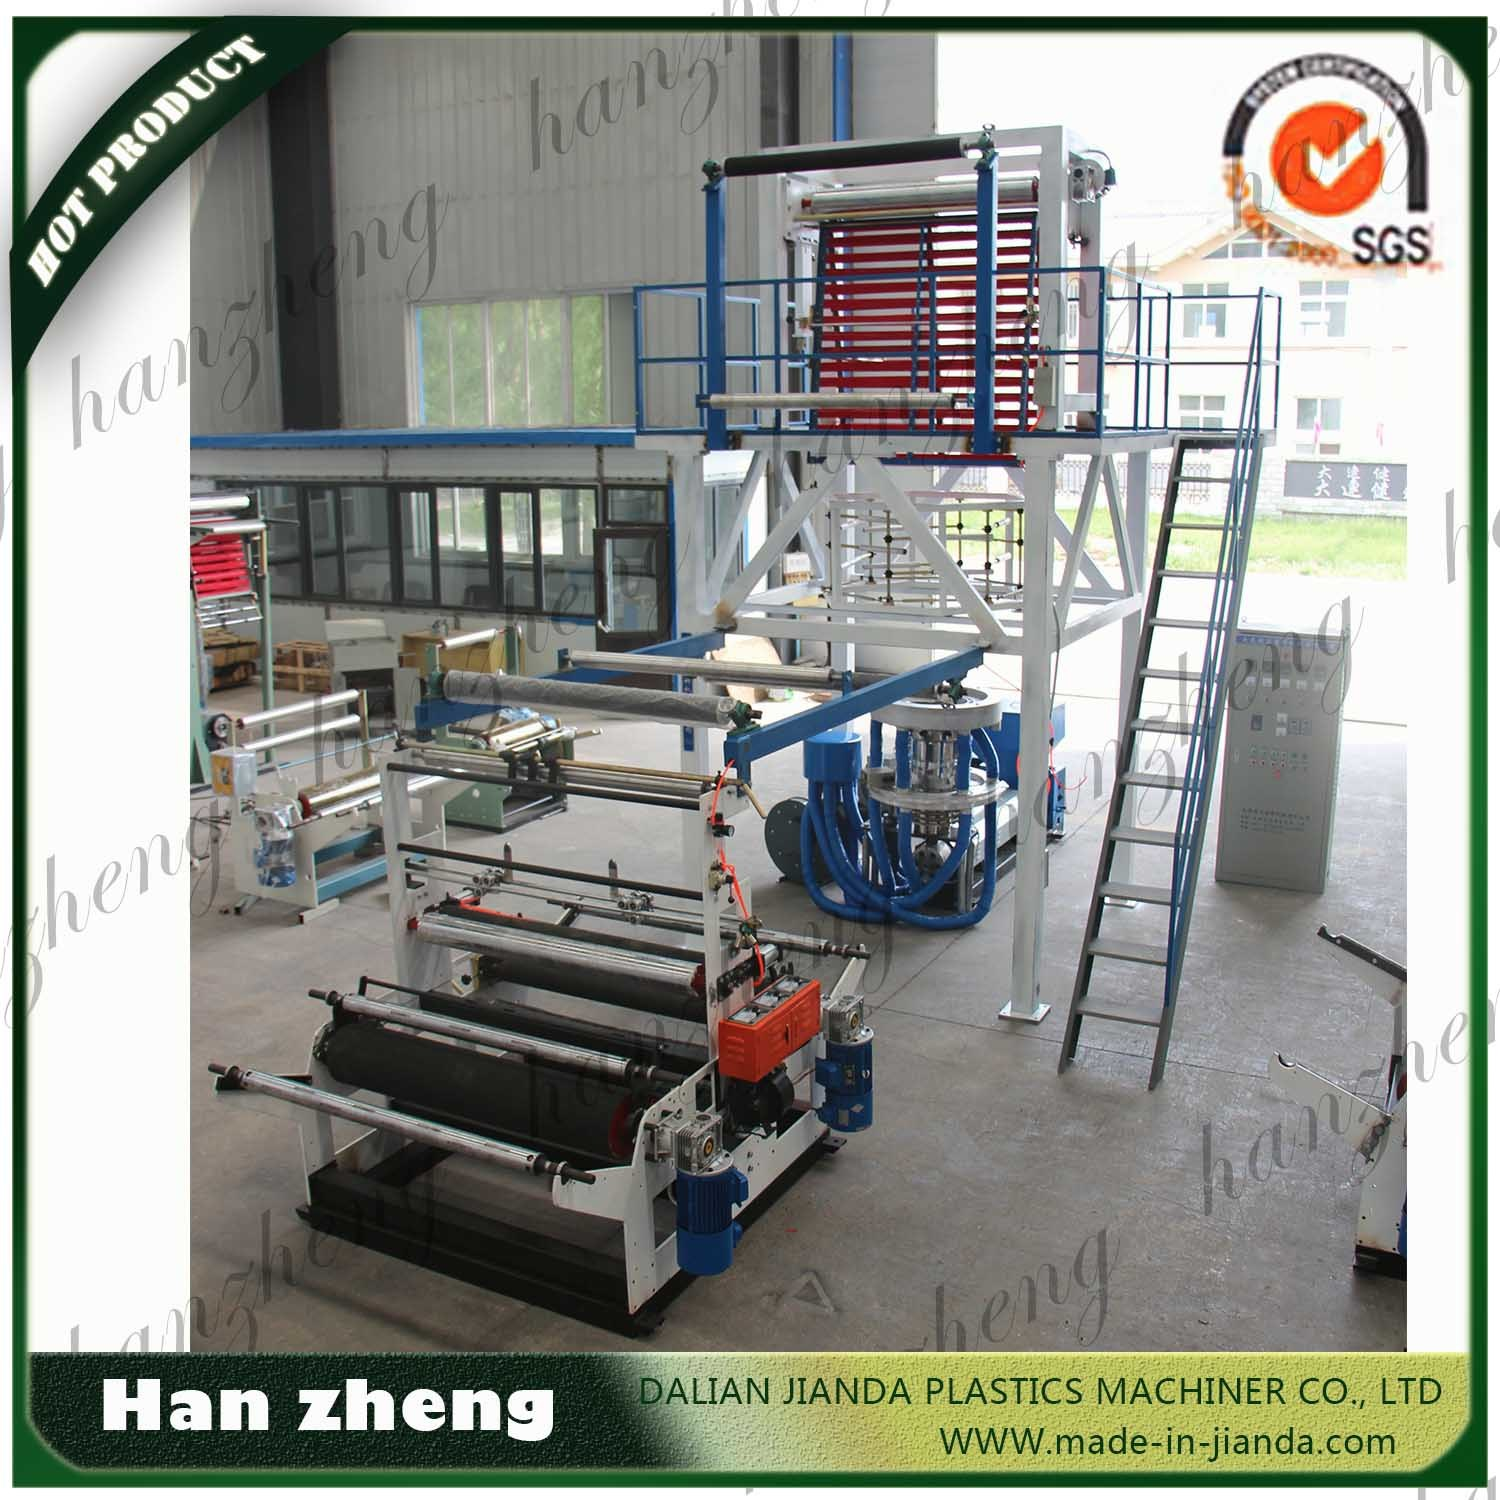 Sjm-Z45X30-850 HDPE/LDPE Single Screw Single Winder Film Blowing Machine